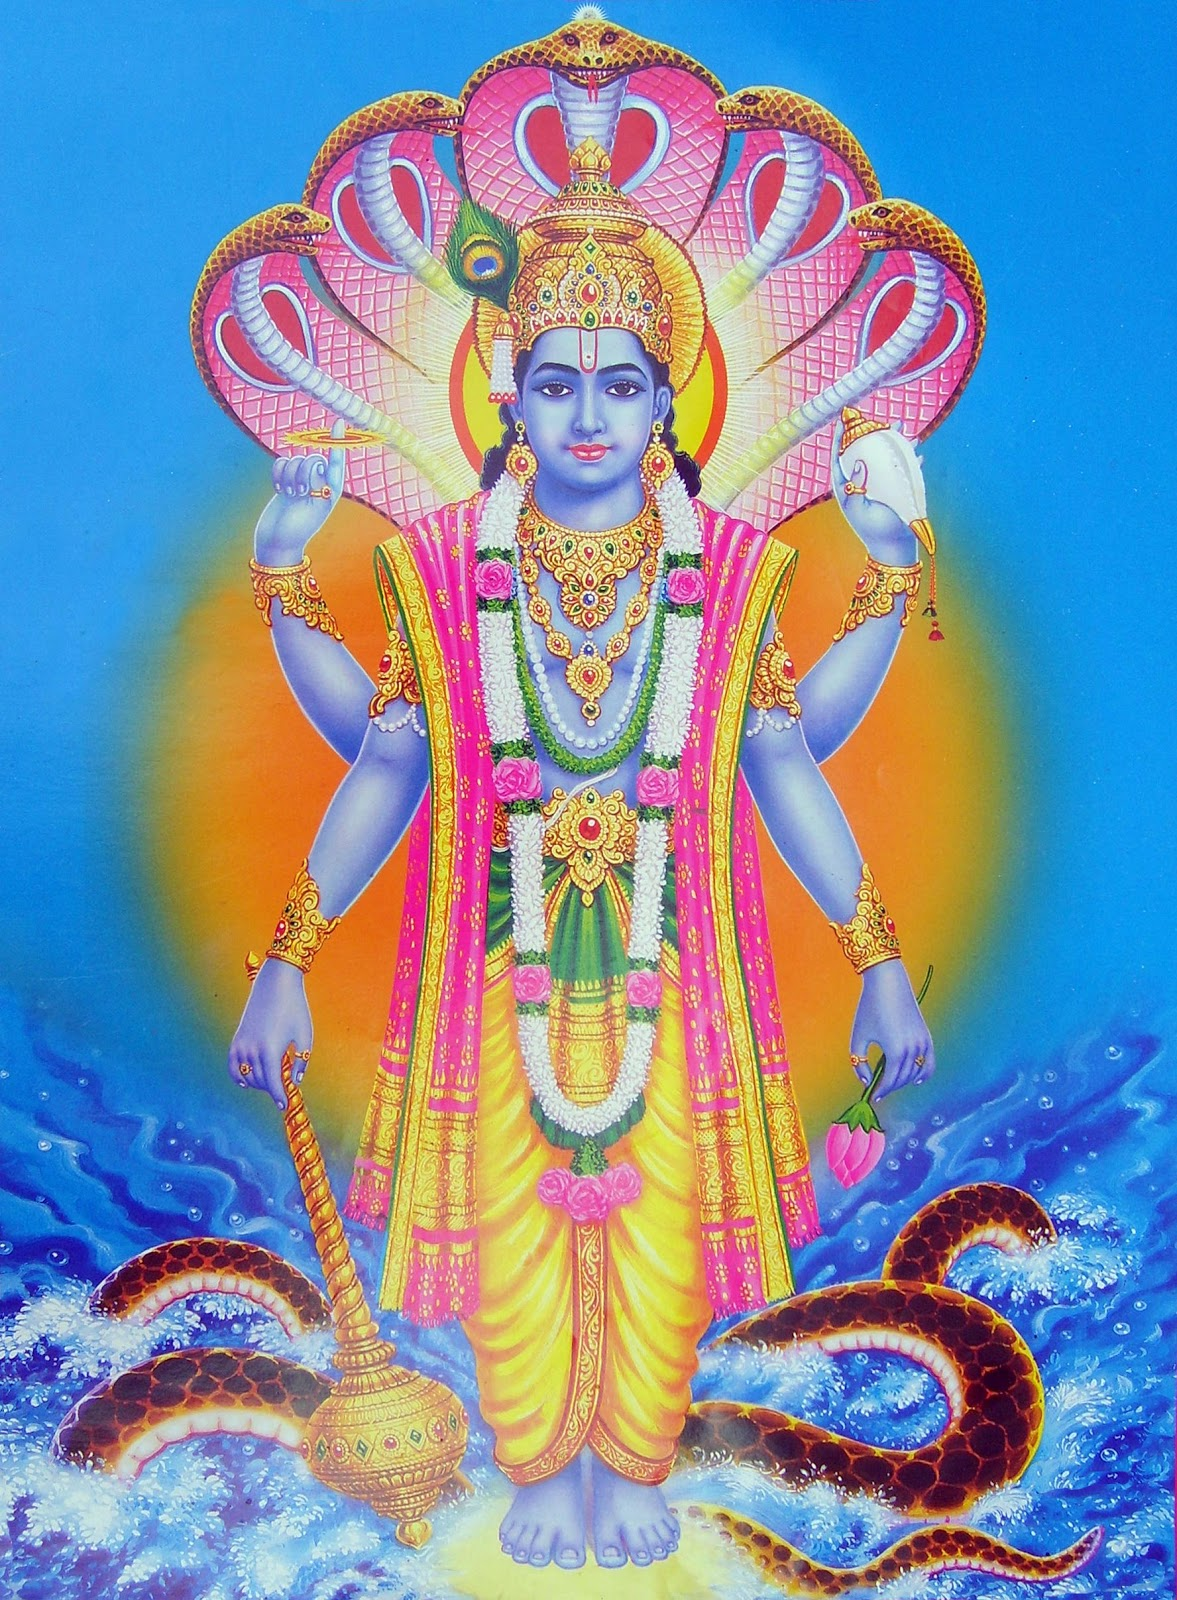 http://4.bp.blogspot.com/-R626DLQqHpY/TrY9_-kN7RI/AAAAAAAAEoc/aoSgKcXt4Ws/s1600/lord-vishnu-hindu-god-mahavishnu-picture-photo.jpg